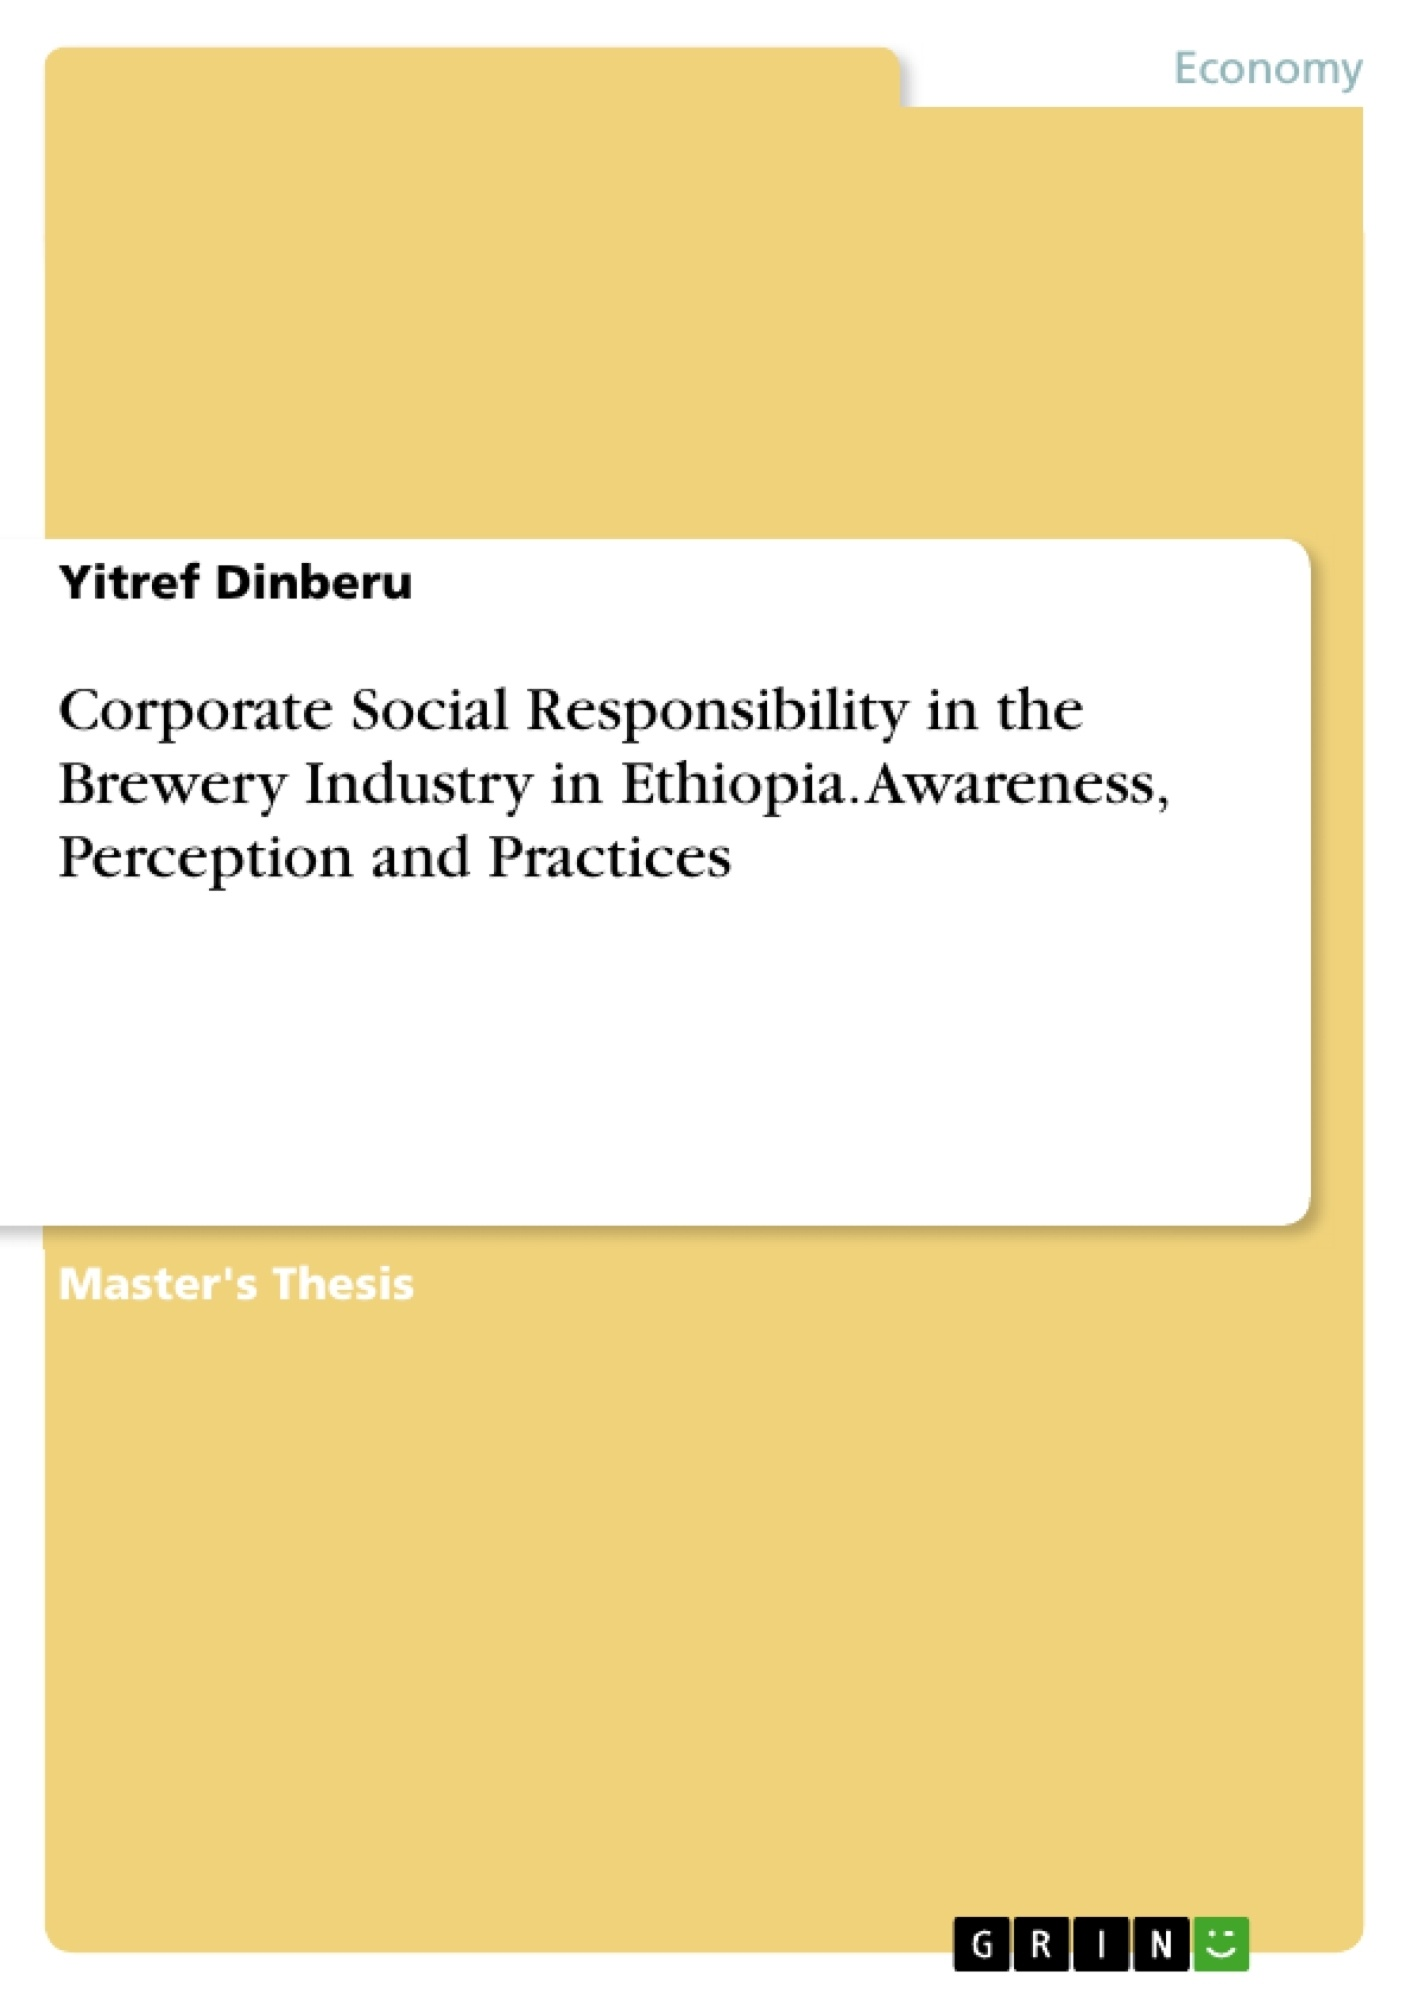 Title: Corporate Social Responsibility in the Brewery Industry in Ethiopia. Awareness, Perception and Practices